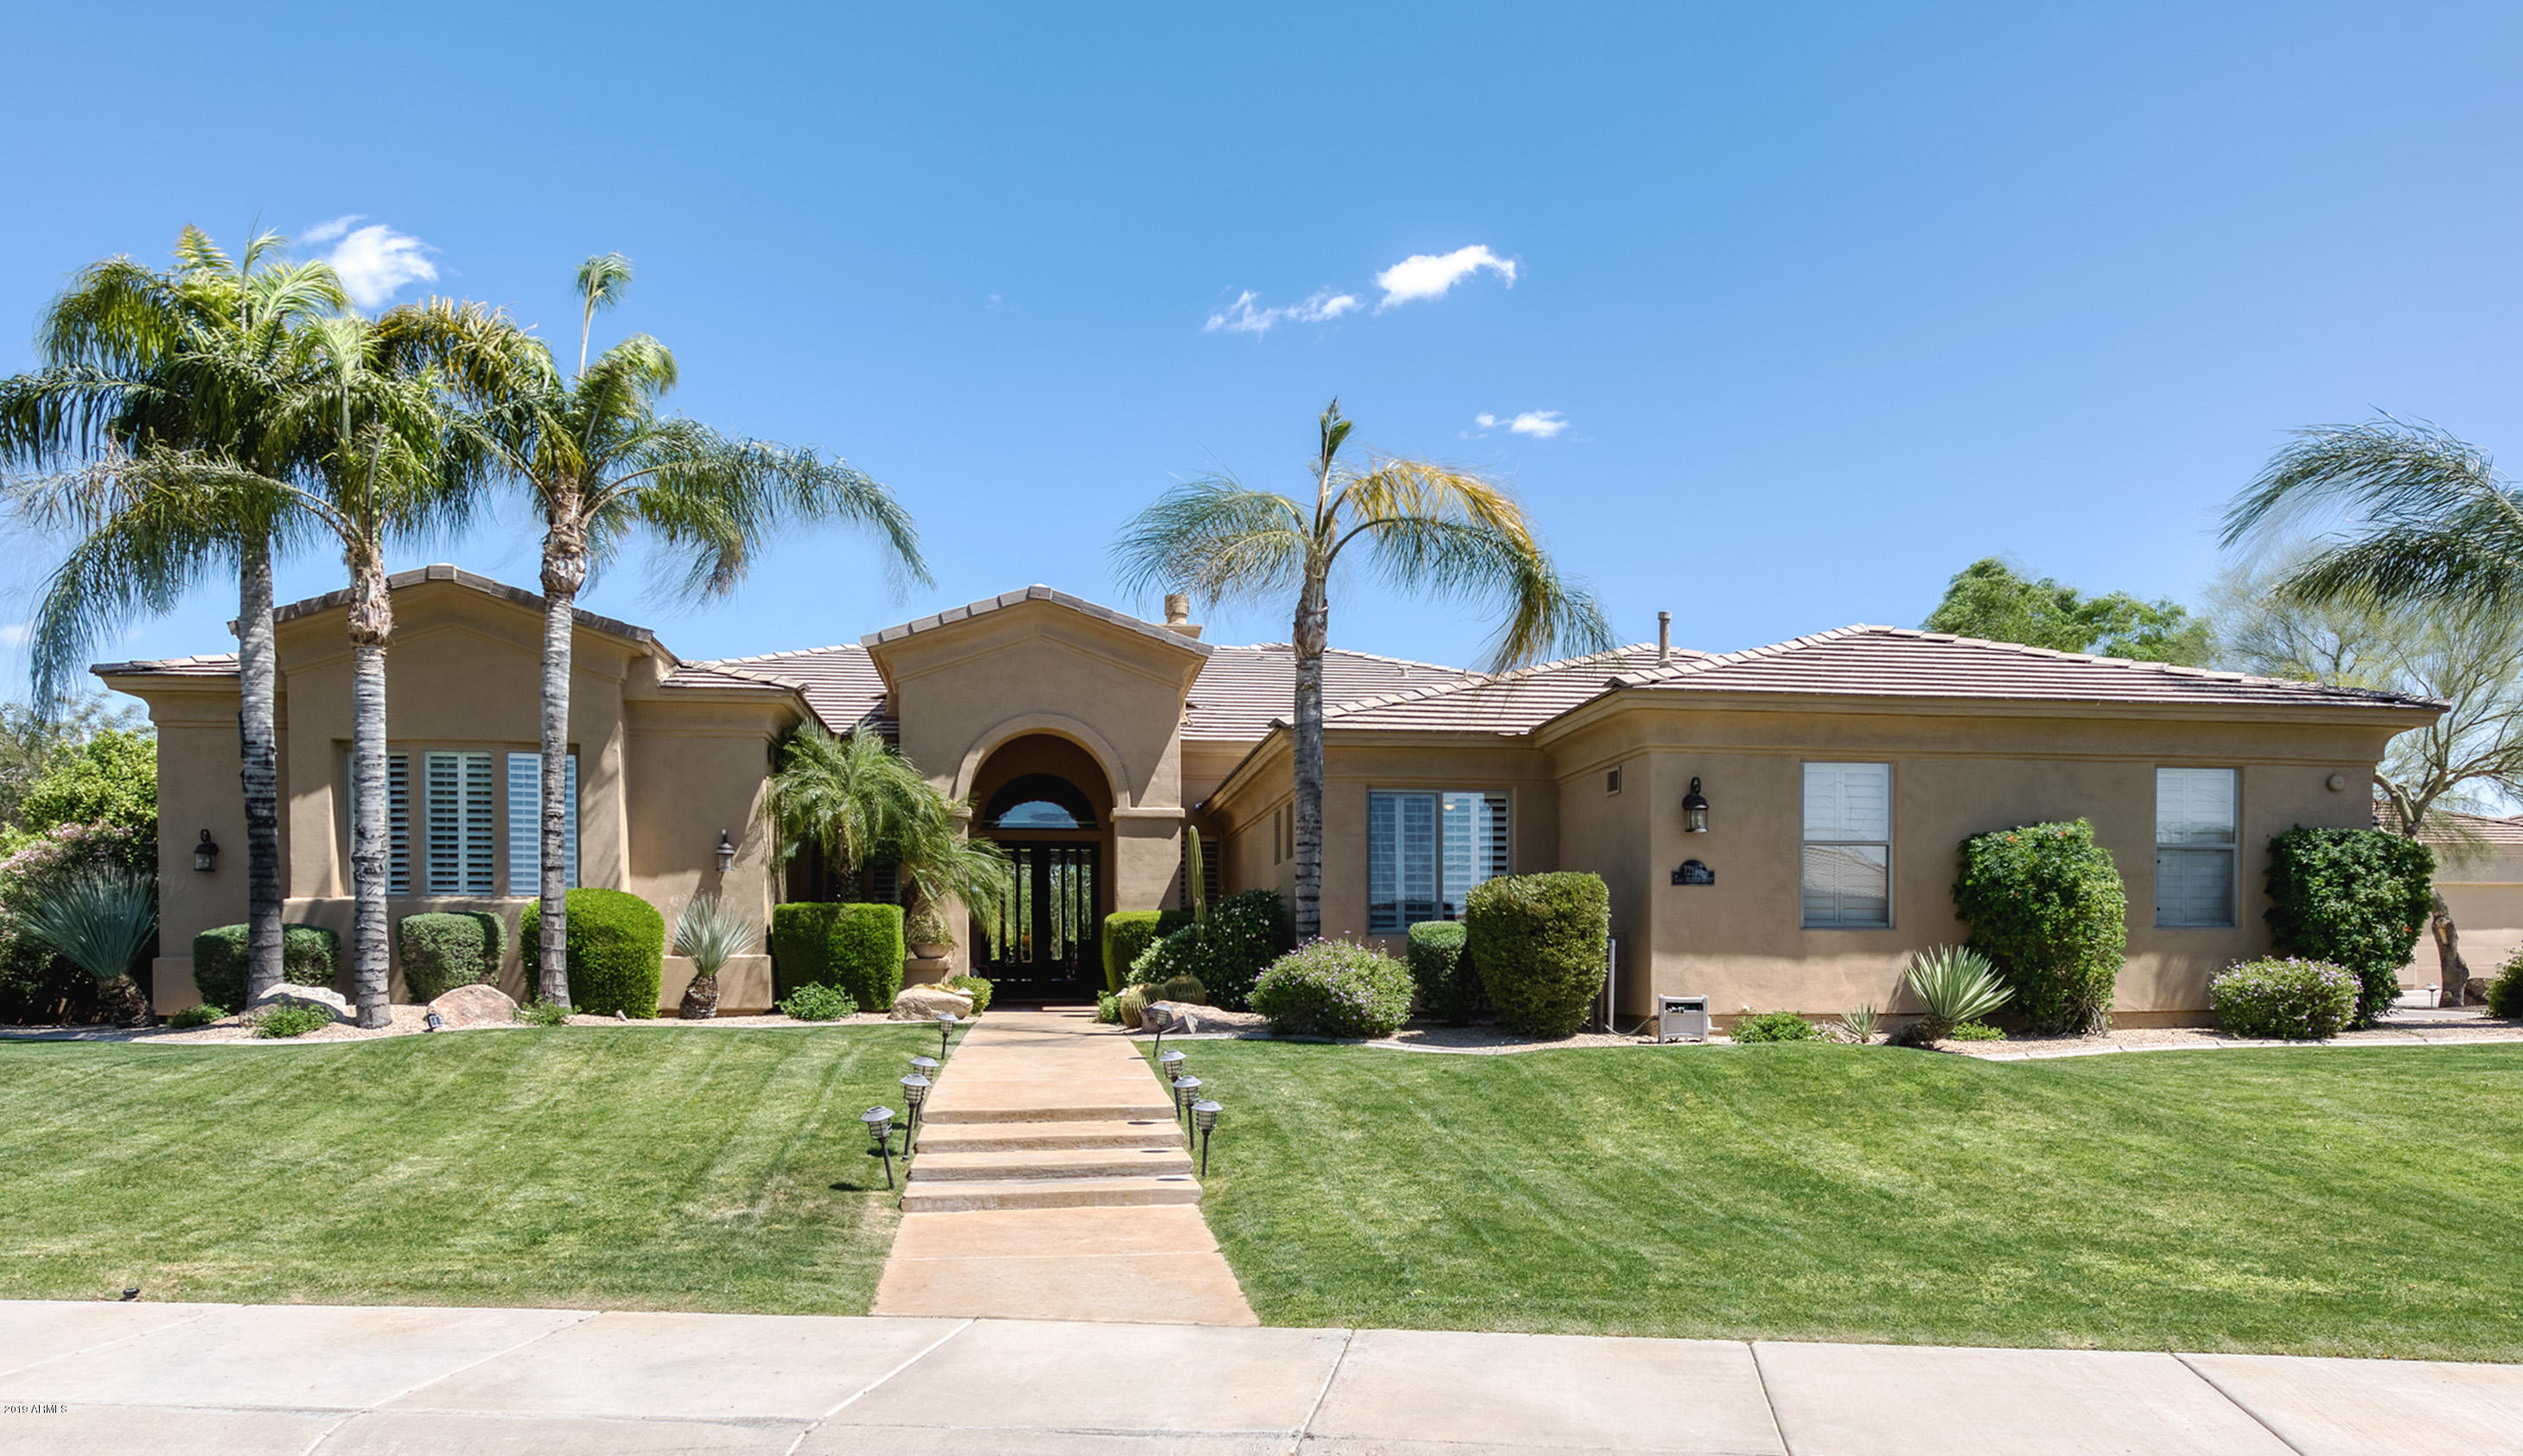 Scottsdale Homes For Sale with Guard Gated Entry – Homes for sale in